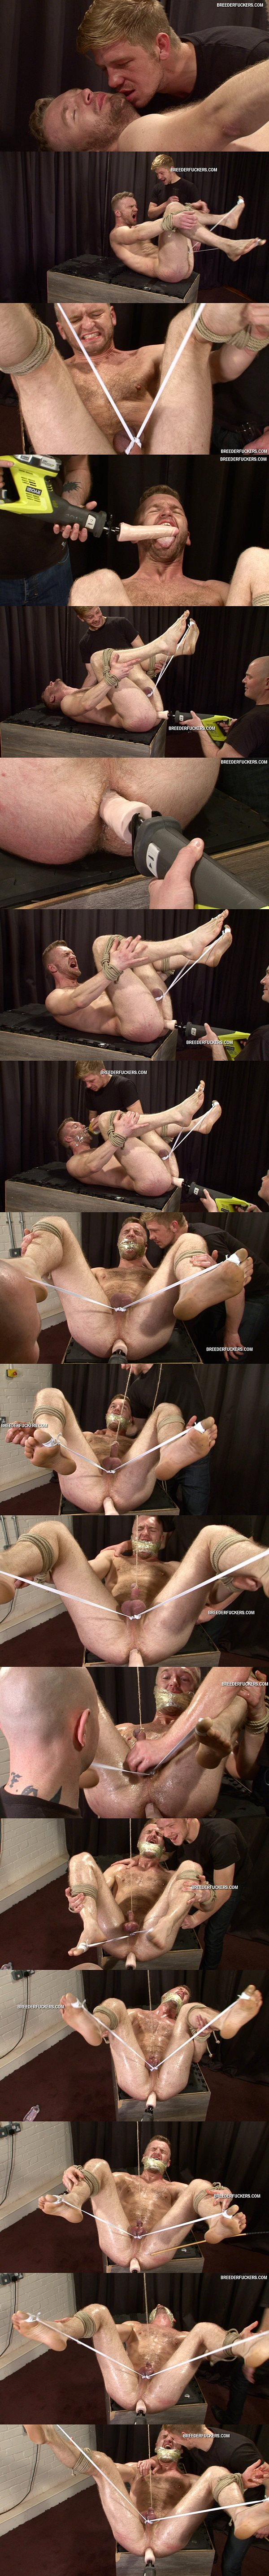 Masculine straight guy Yuris tormented and dildo-fucked by perverted masters Dave & Derek at Breederfuckers 02